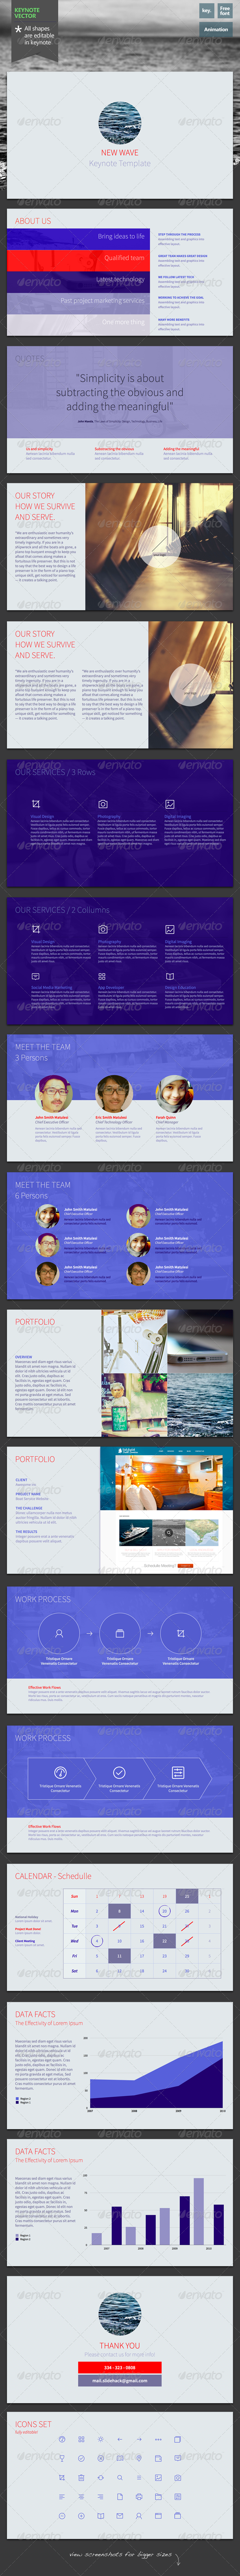 GraphicRiver New Wave Keynote Template 6160792